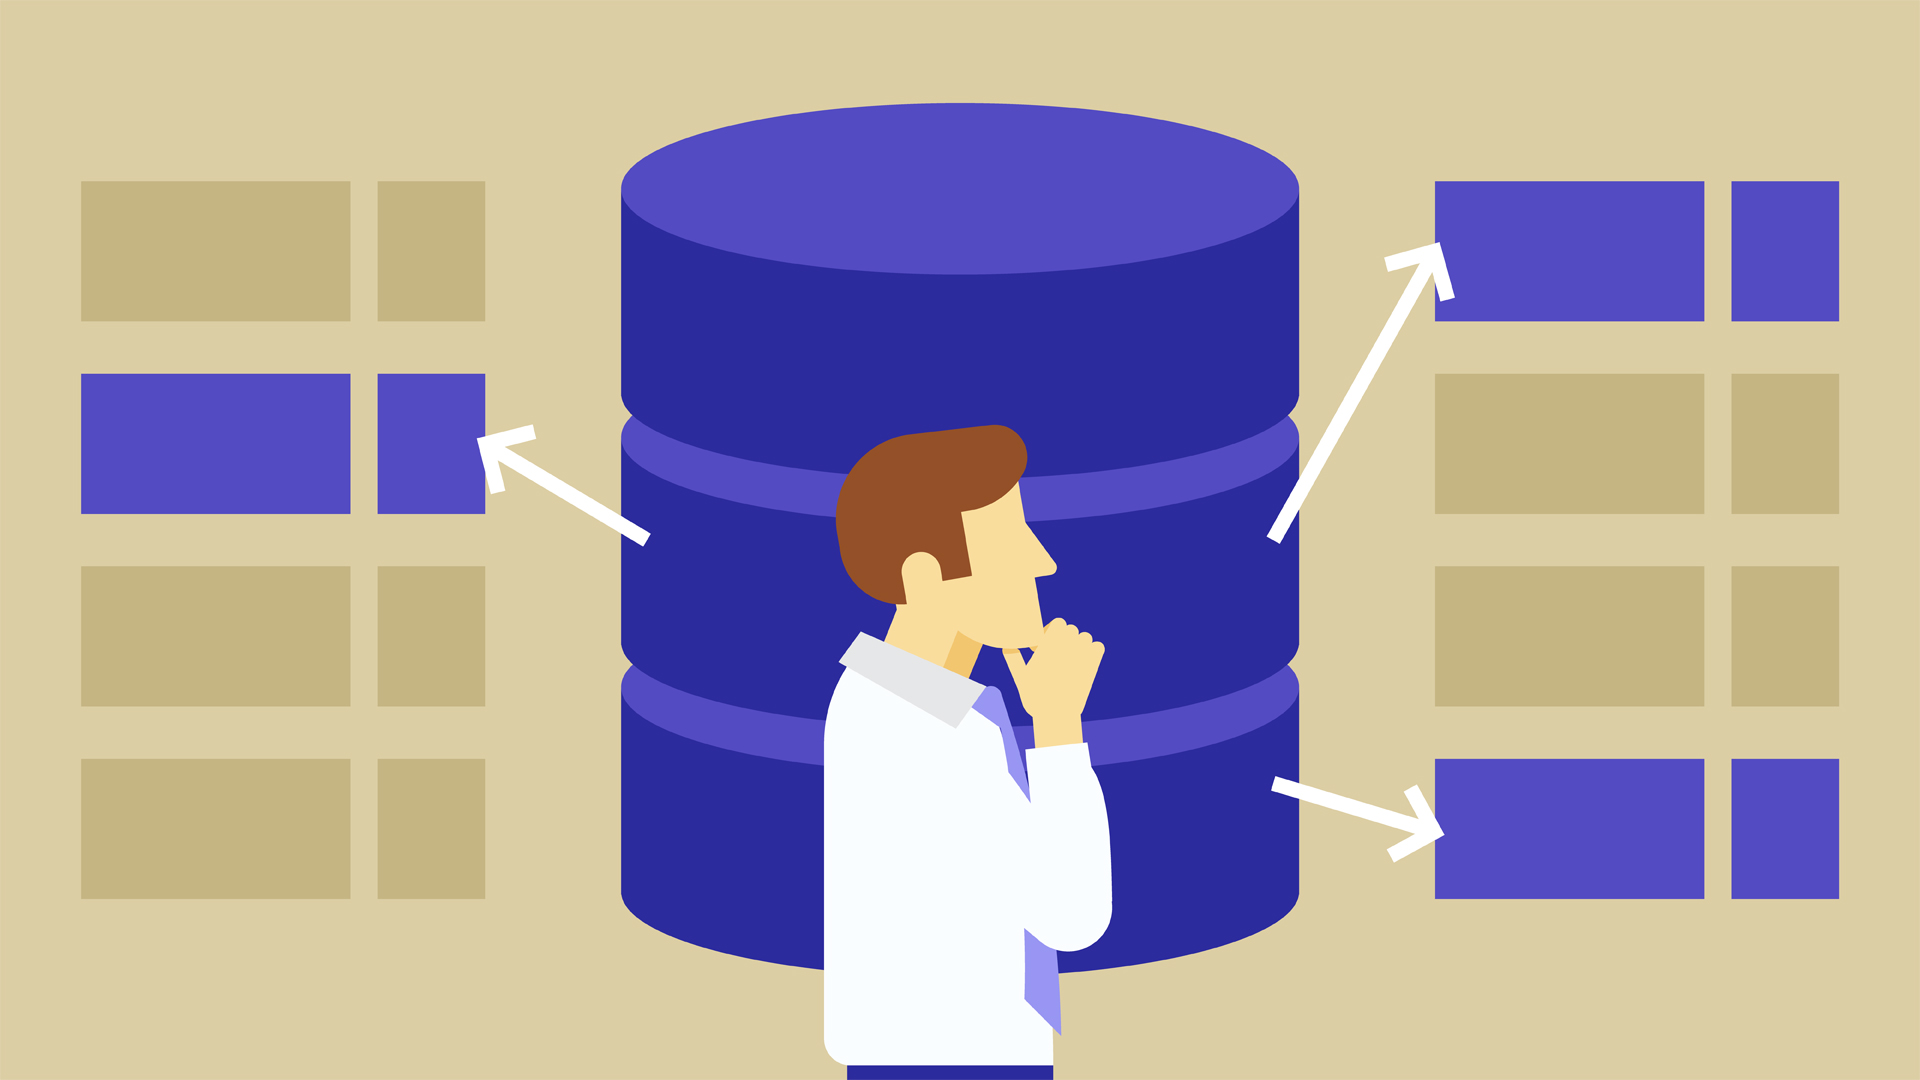 Microsoft Access Database Tying Together Many Work Processes in a Single Package